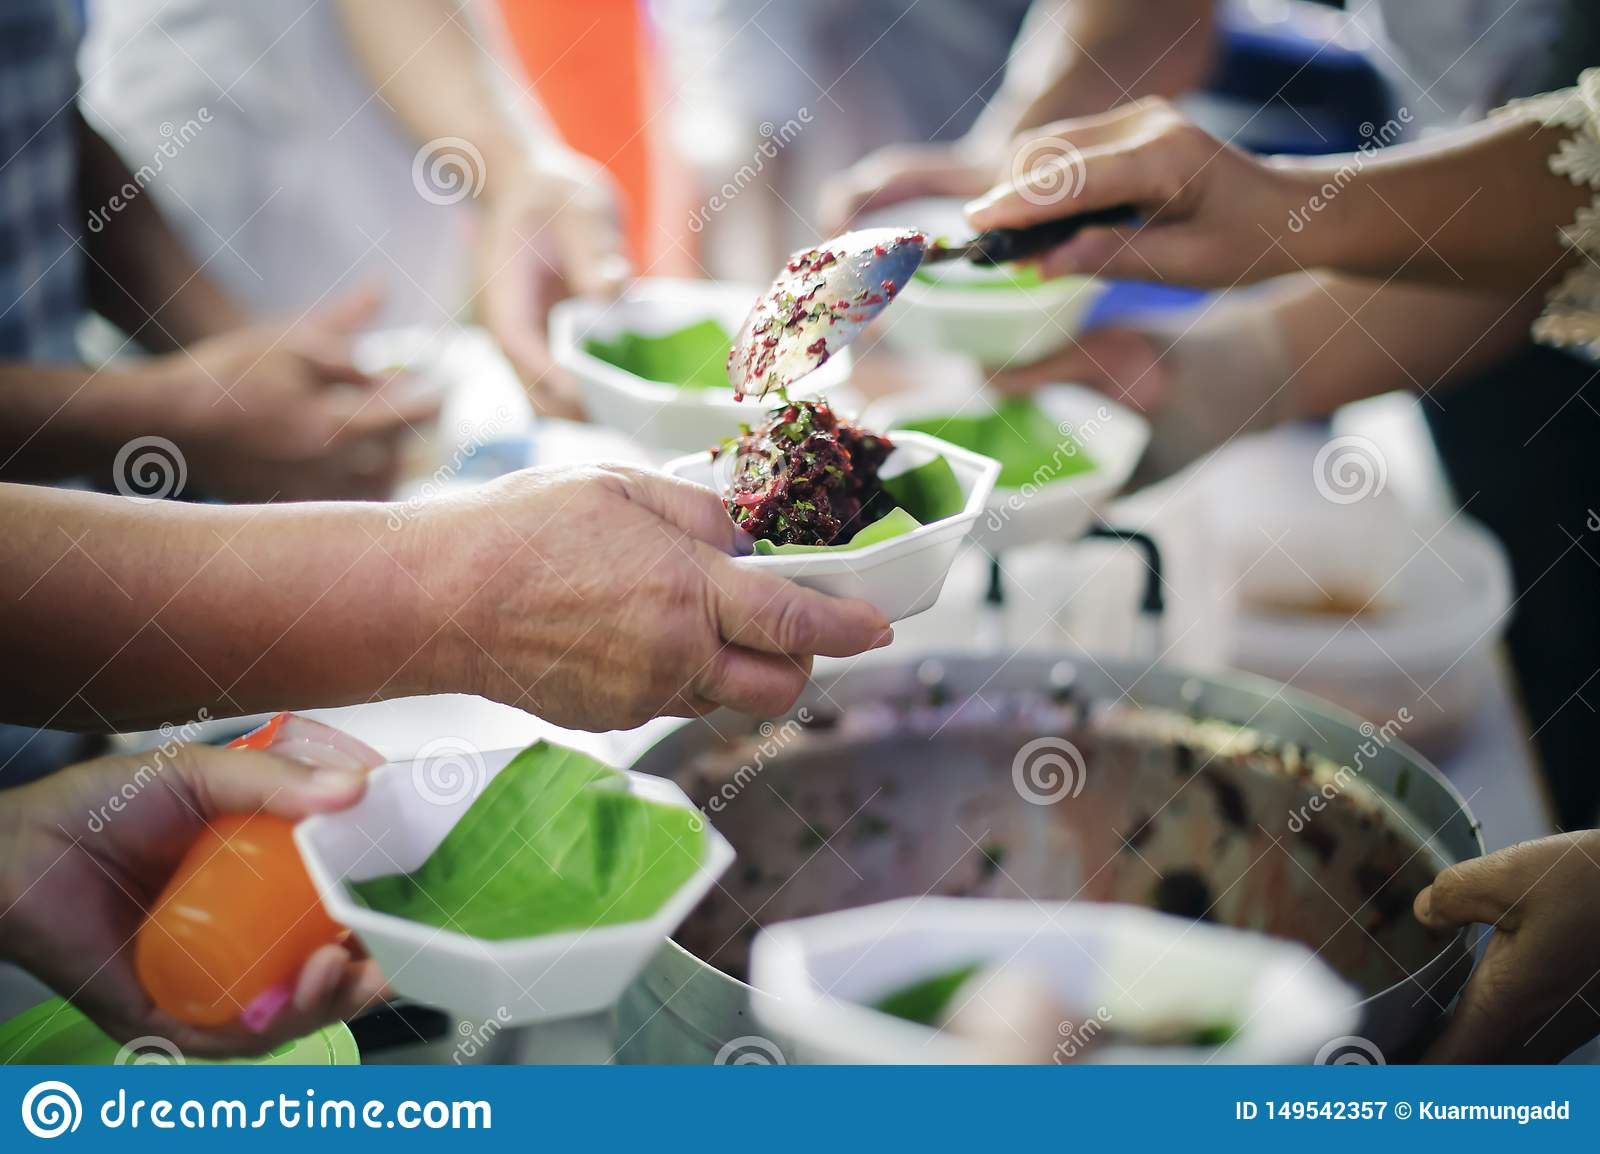 Helping People With Hunger With Kindness : the concept of life problems, hunger in society : concept of charity food for the poor